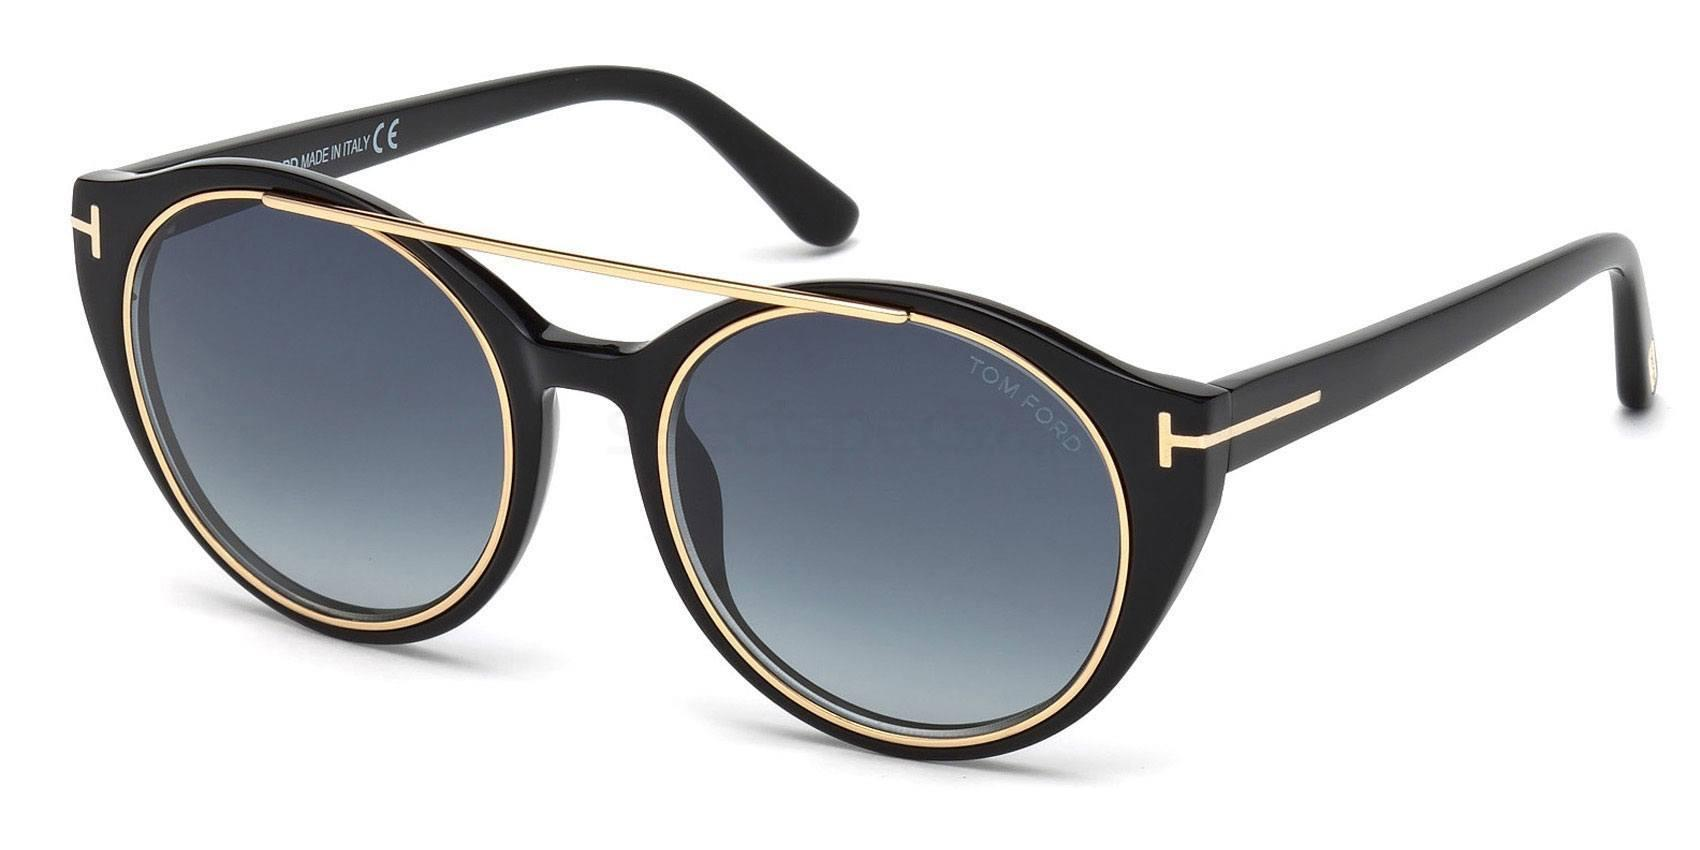 Tom Ford FT0383 glasses